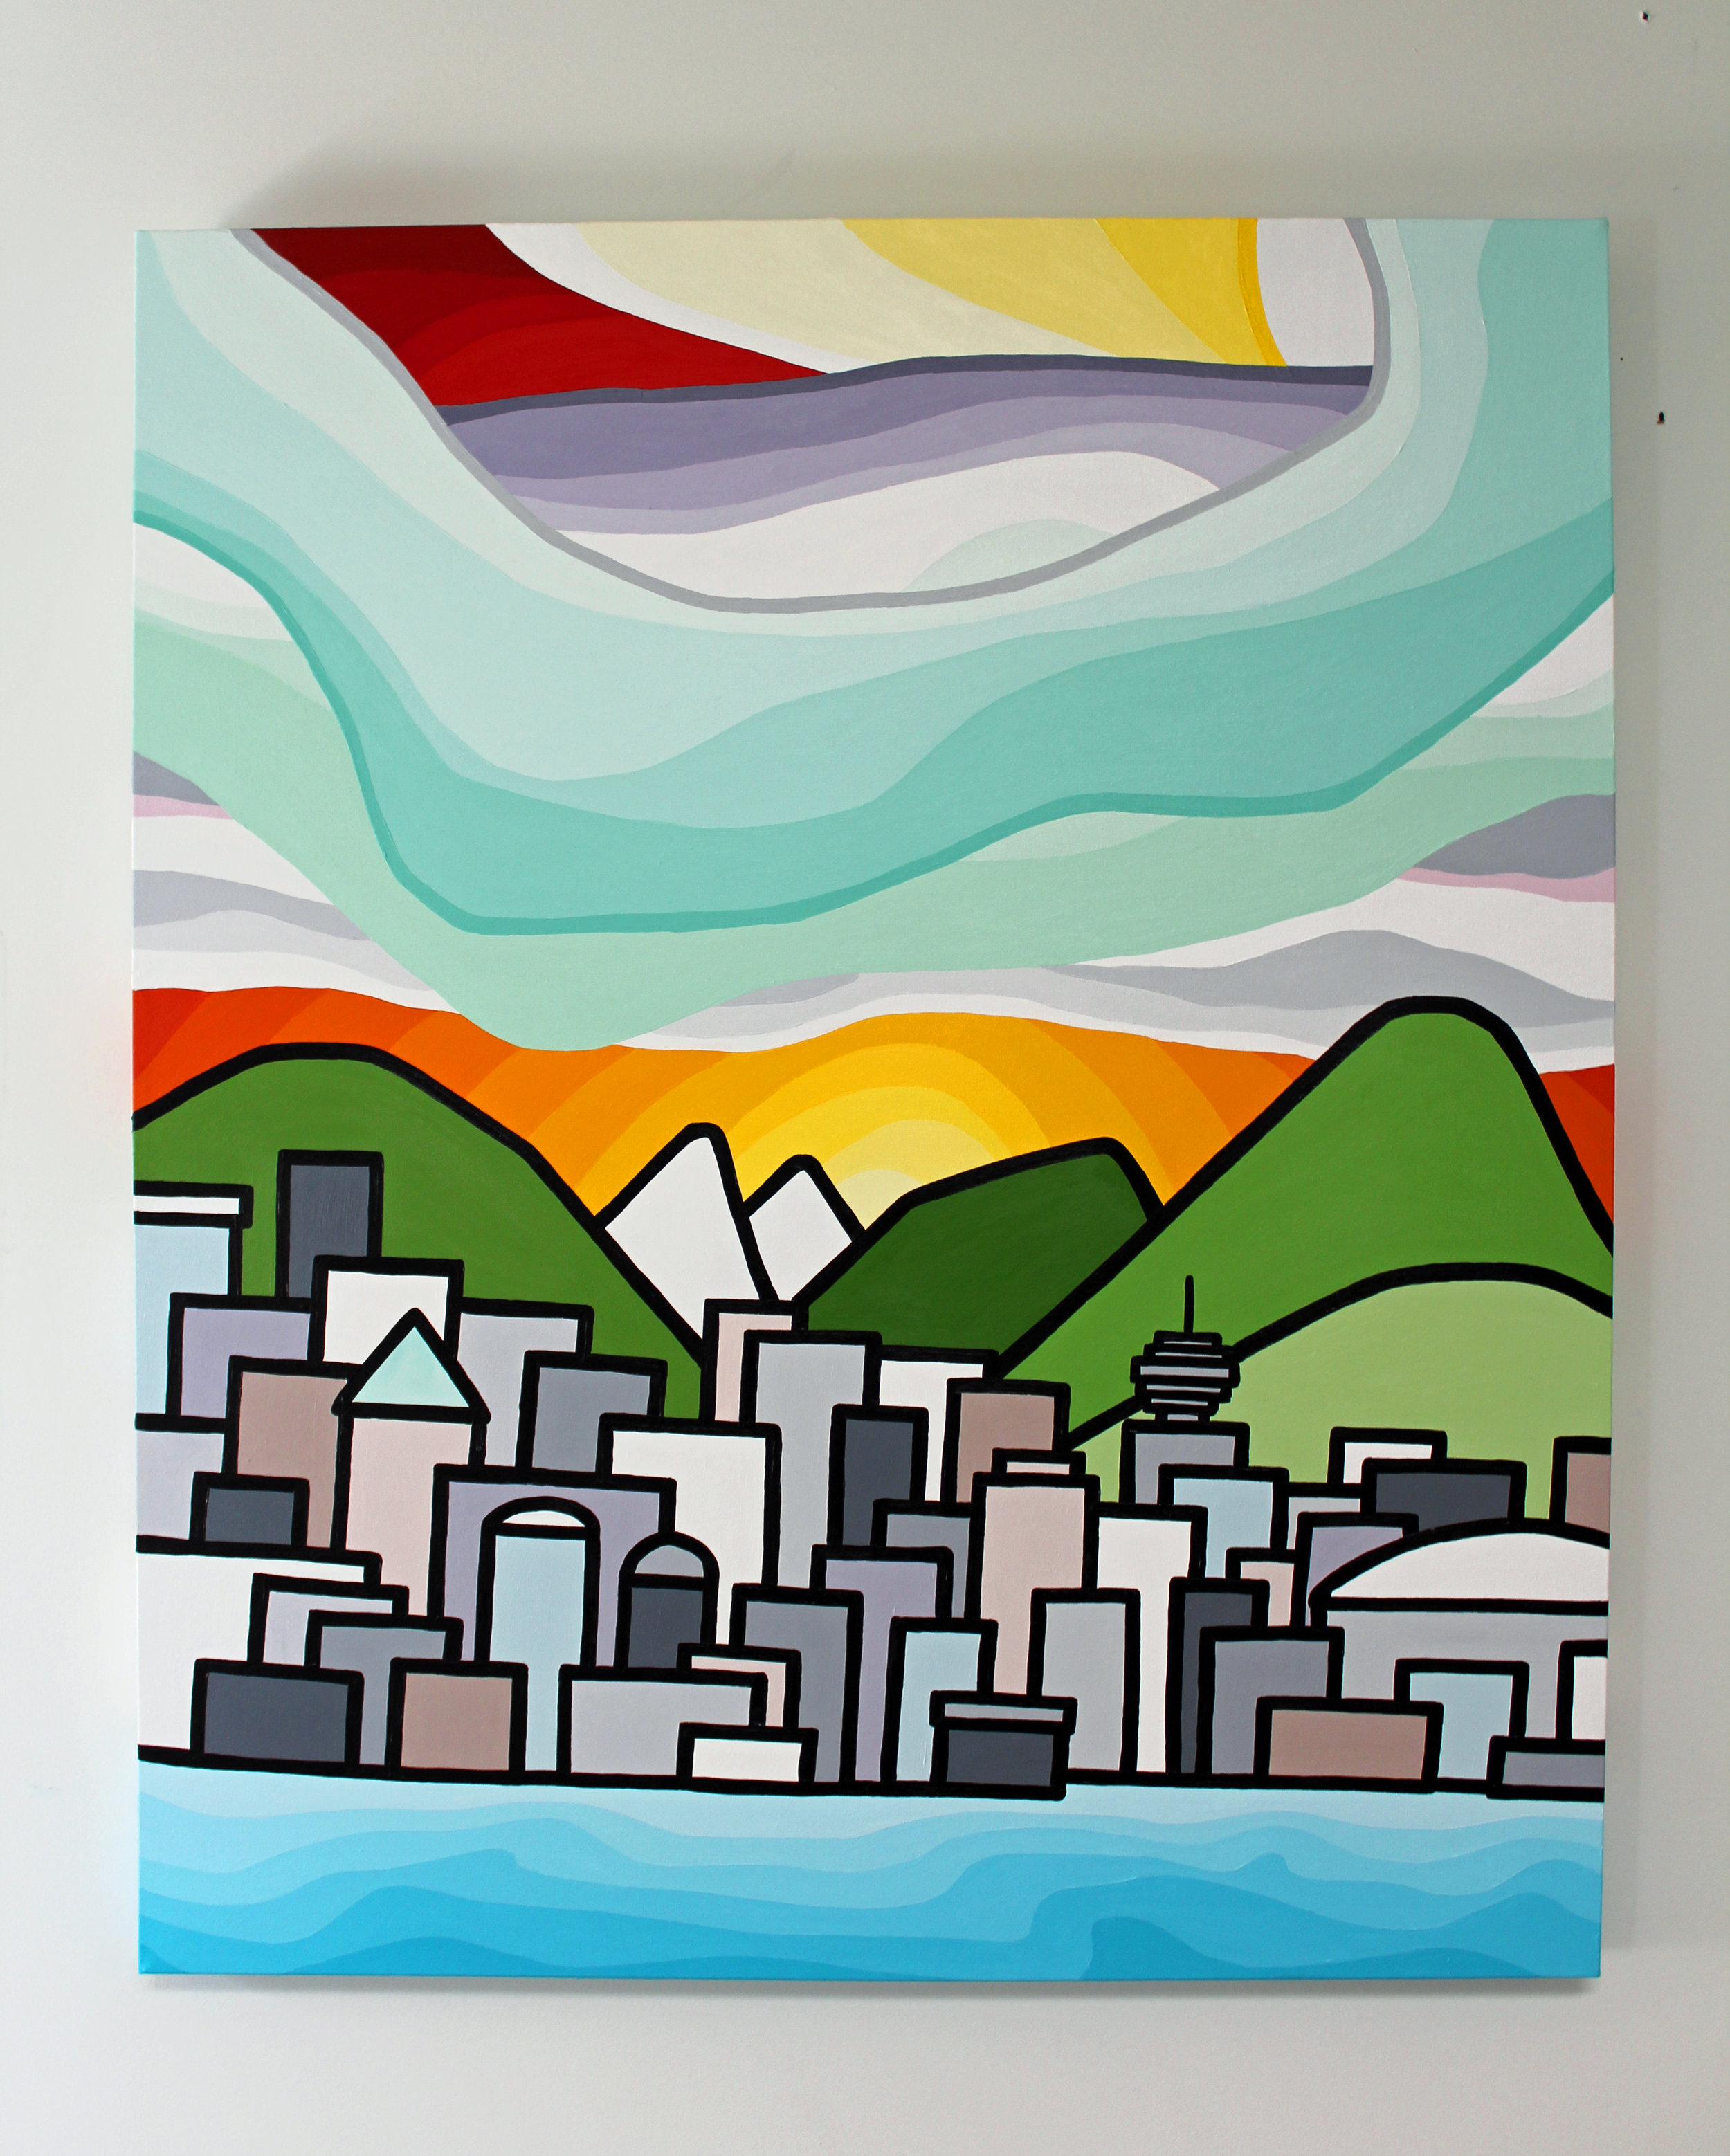 From False Creek - Size: 36